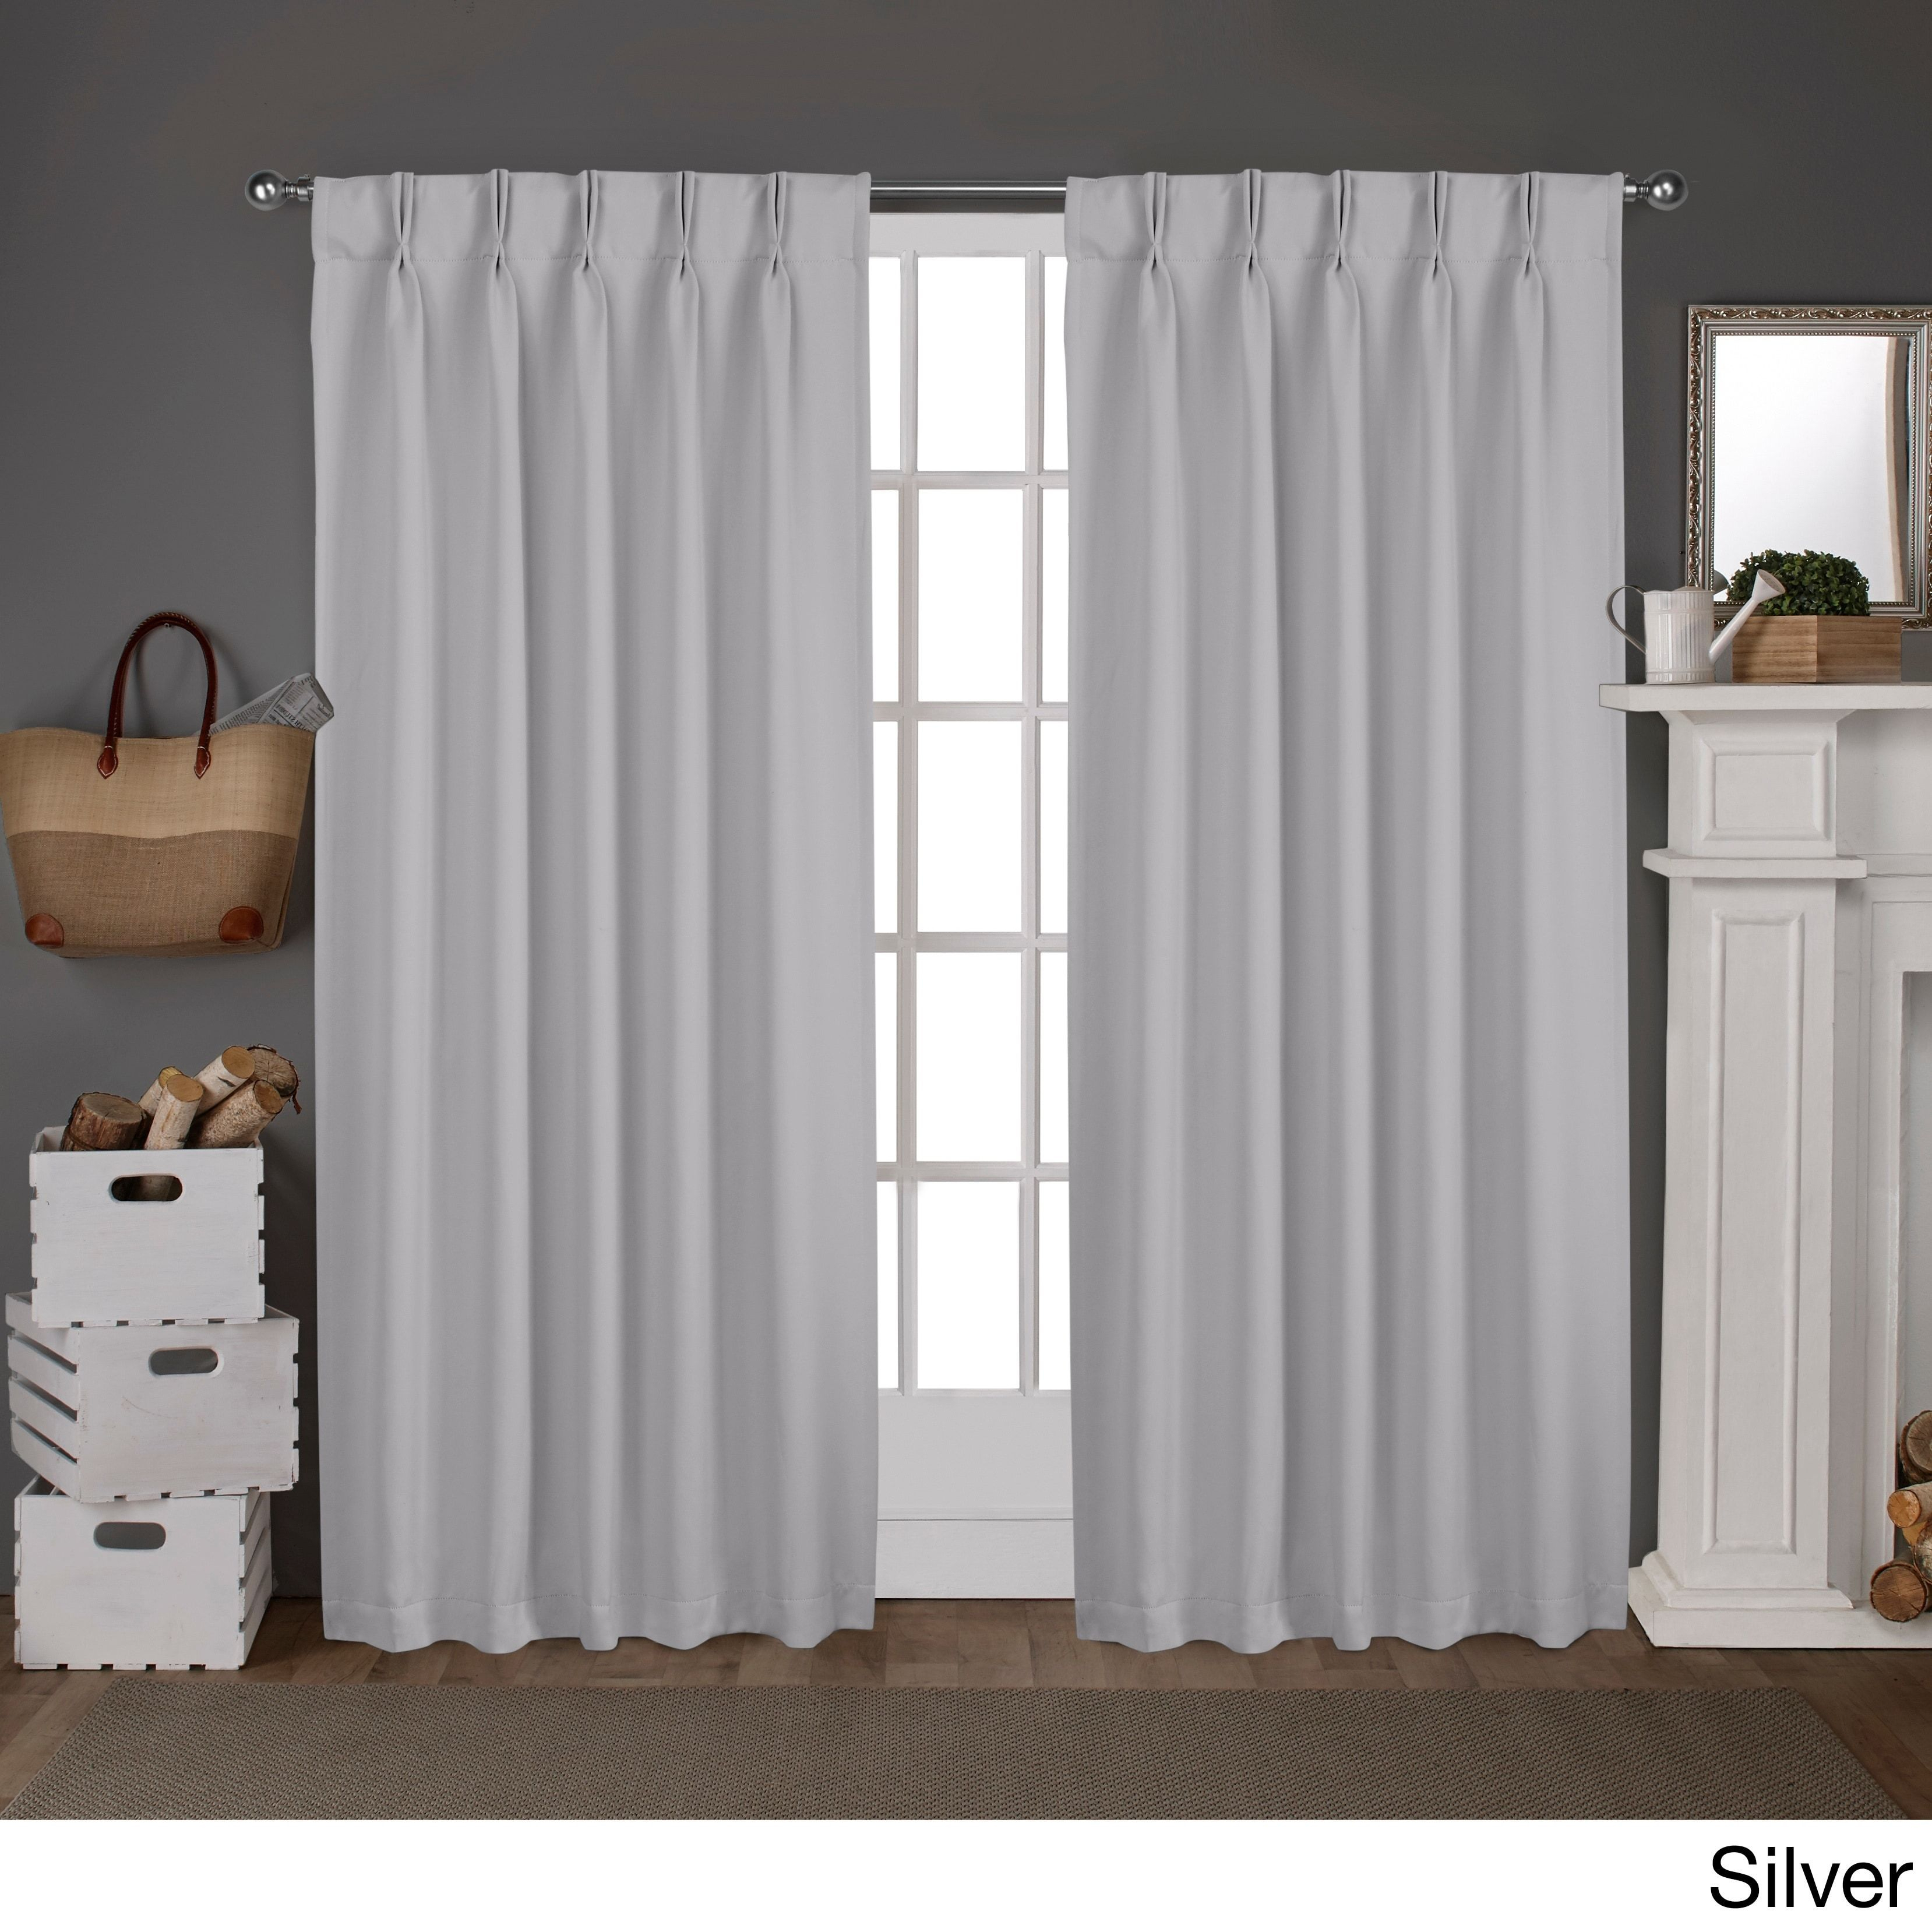 Ati Home Sateen Pinch Pleat Woven Blackout Back Tab Curtain With Sateen Woven Blackout Curtain Panel Pairs With Pinch Pleat Top (View 4 of 20)